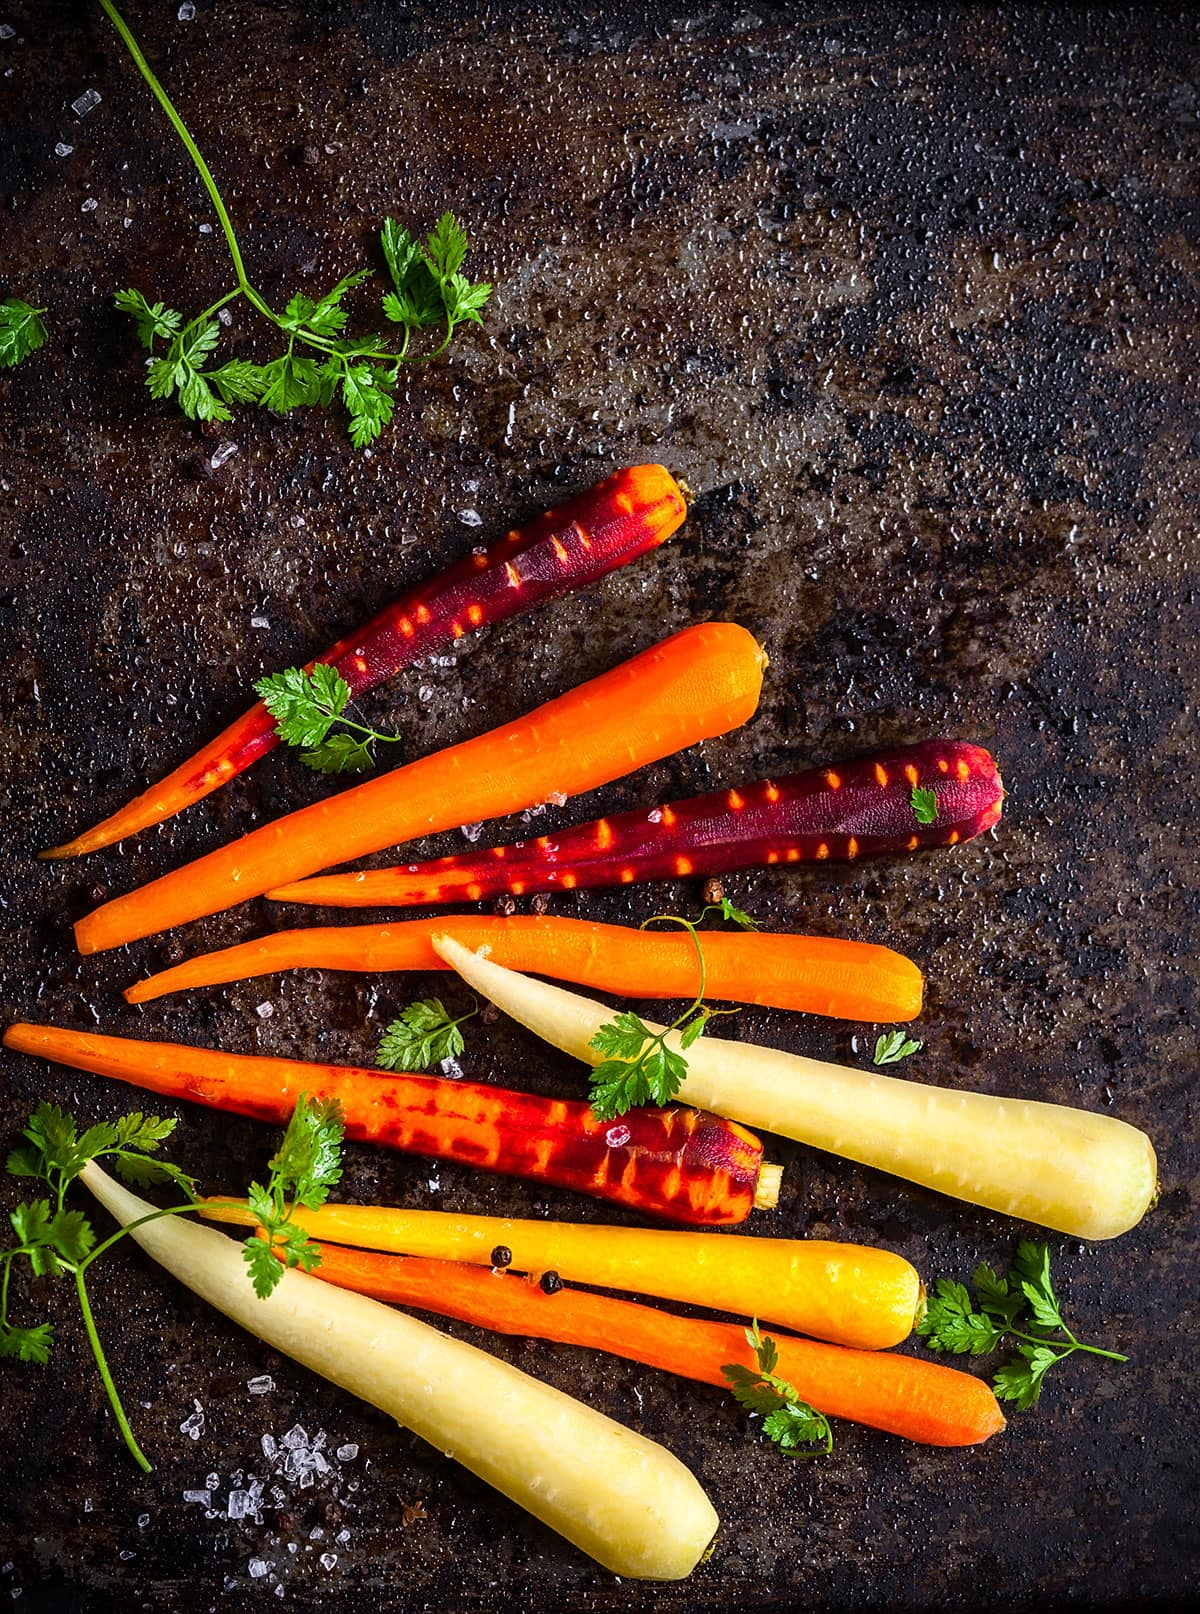 Varieties of carrots including black carrot on a black background